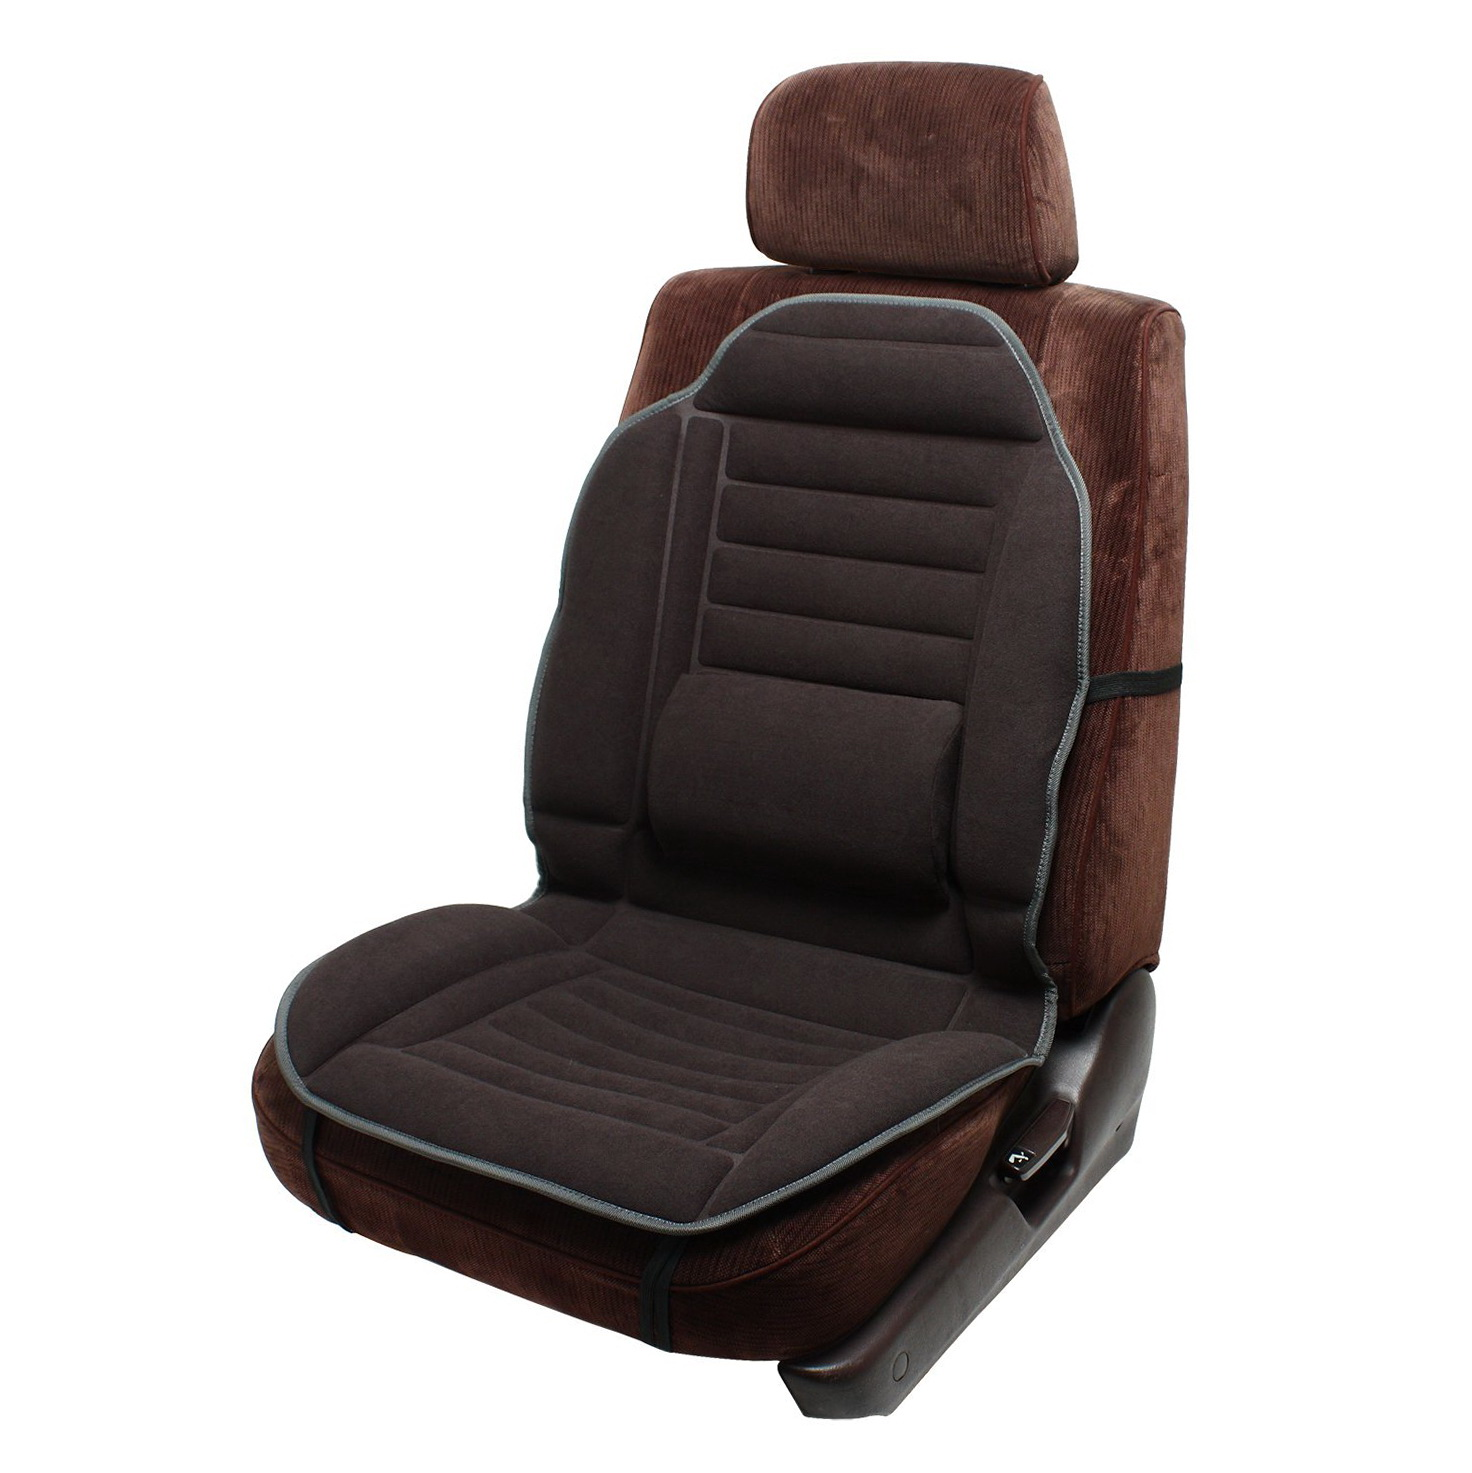 Car Seat Cushions For Adults